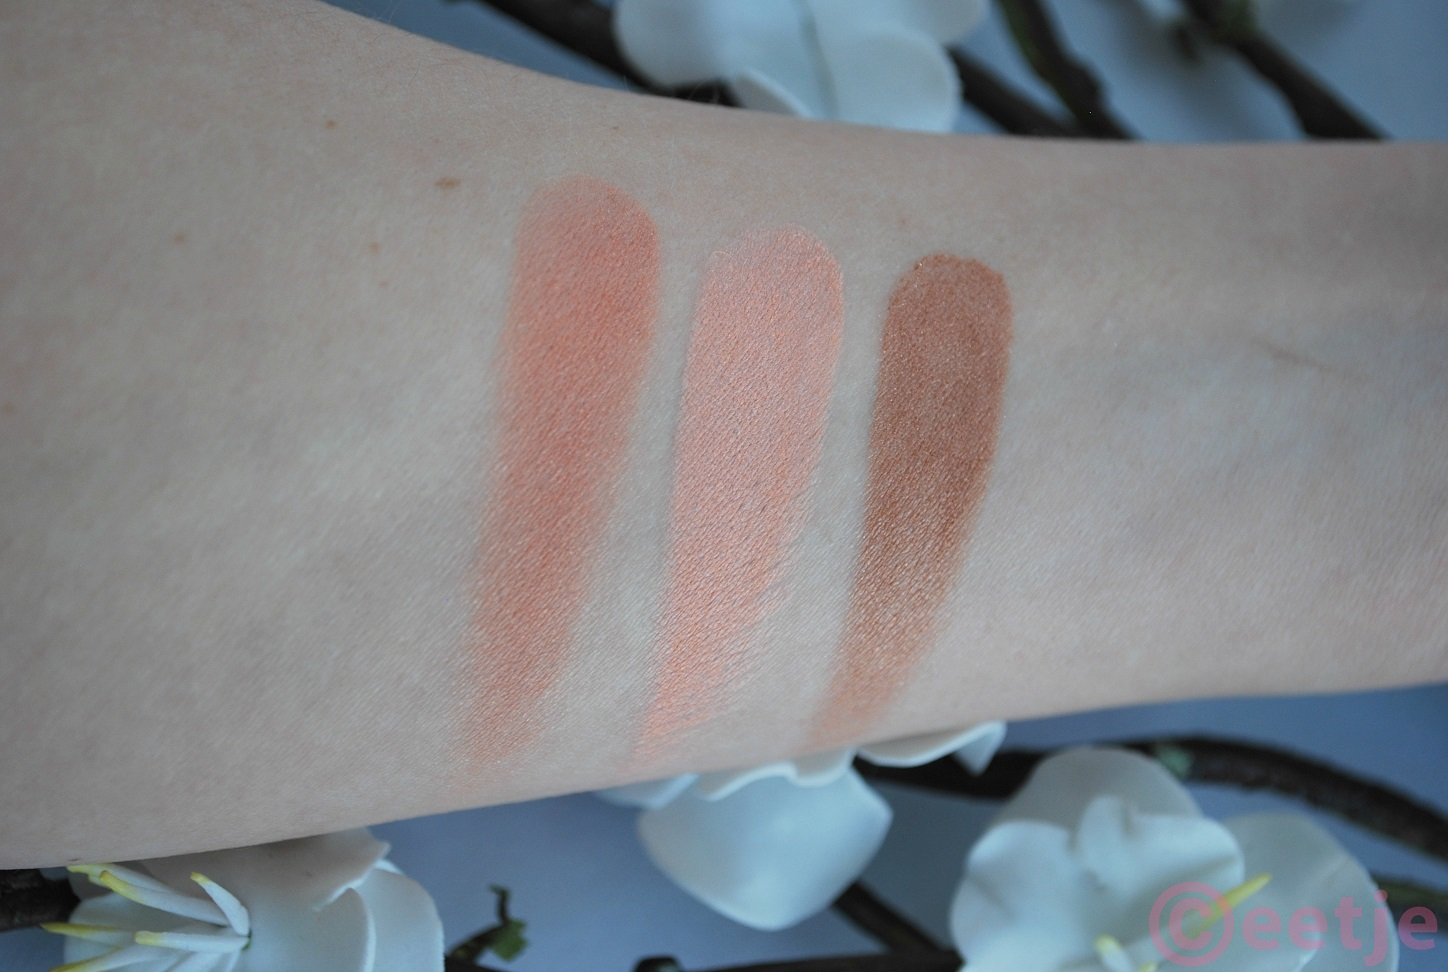 swatch review hema blush satin mat nr 04 nr 05 nr 06